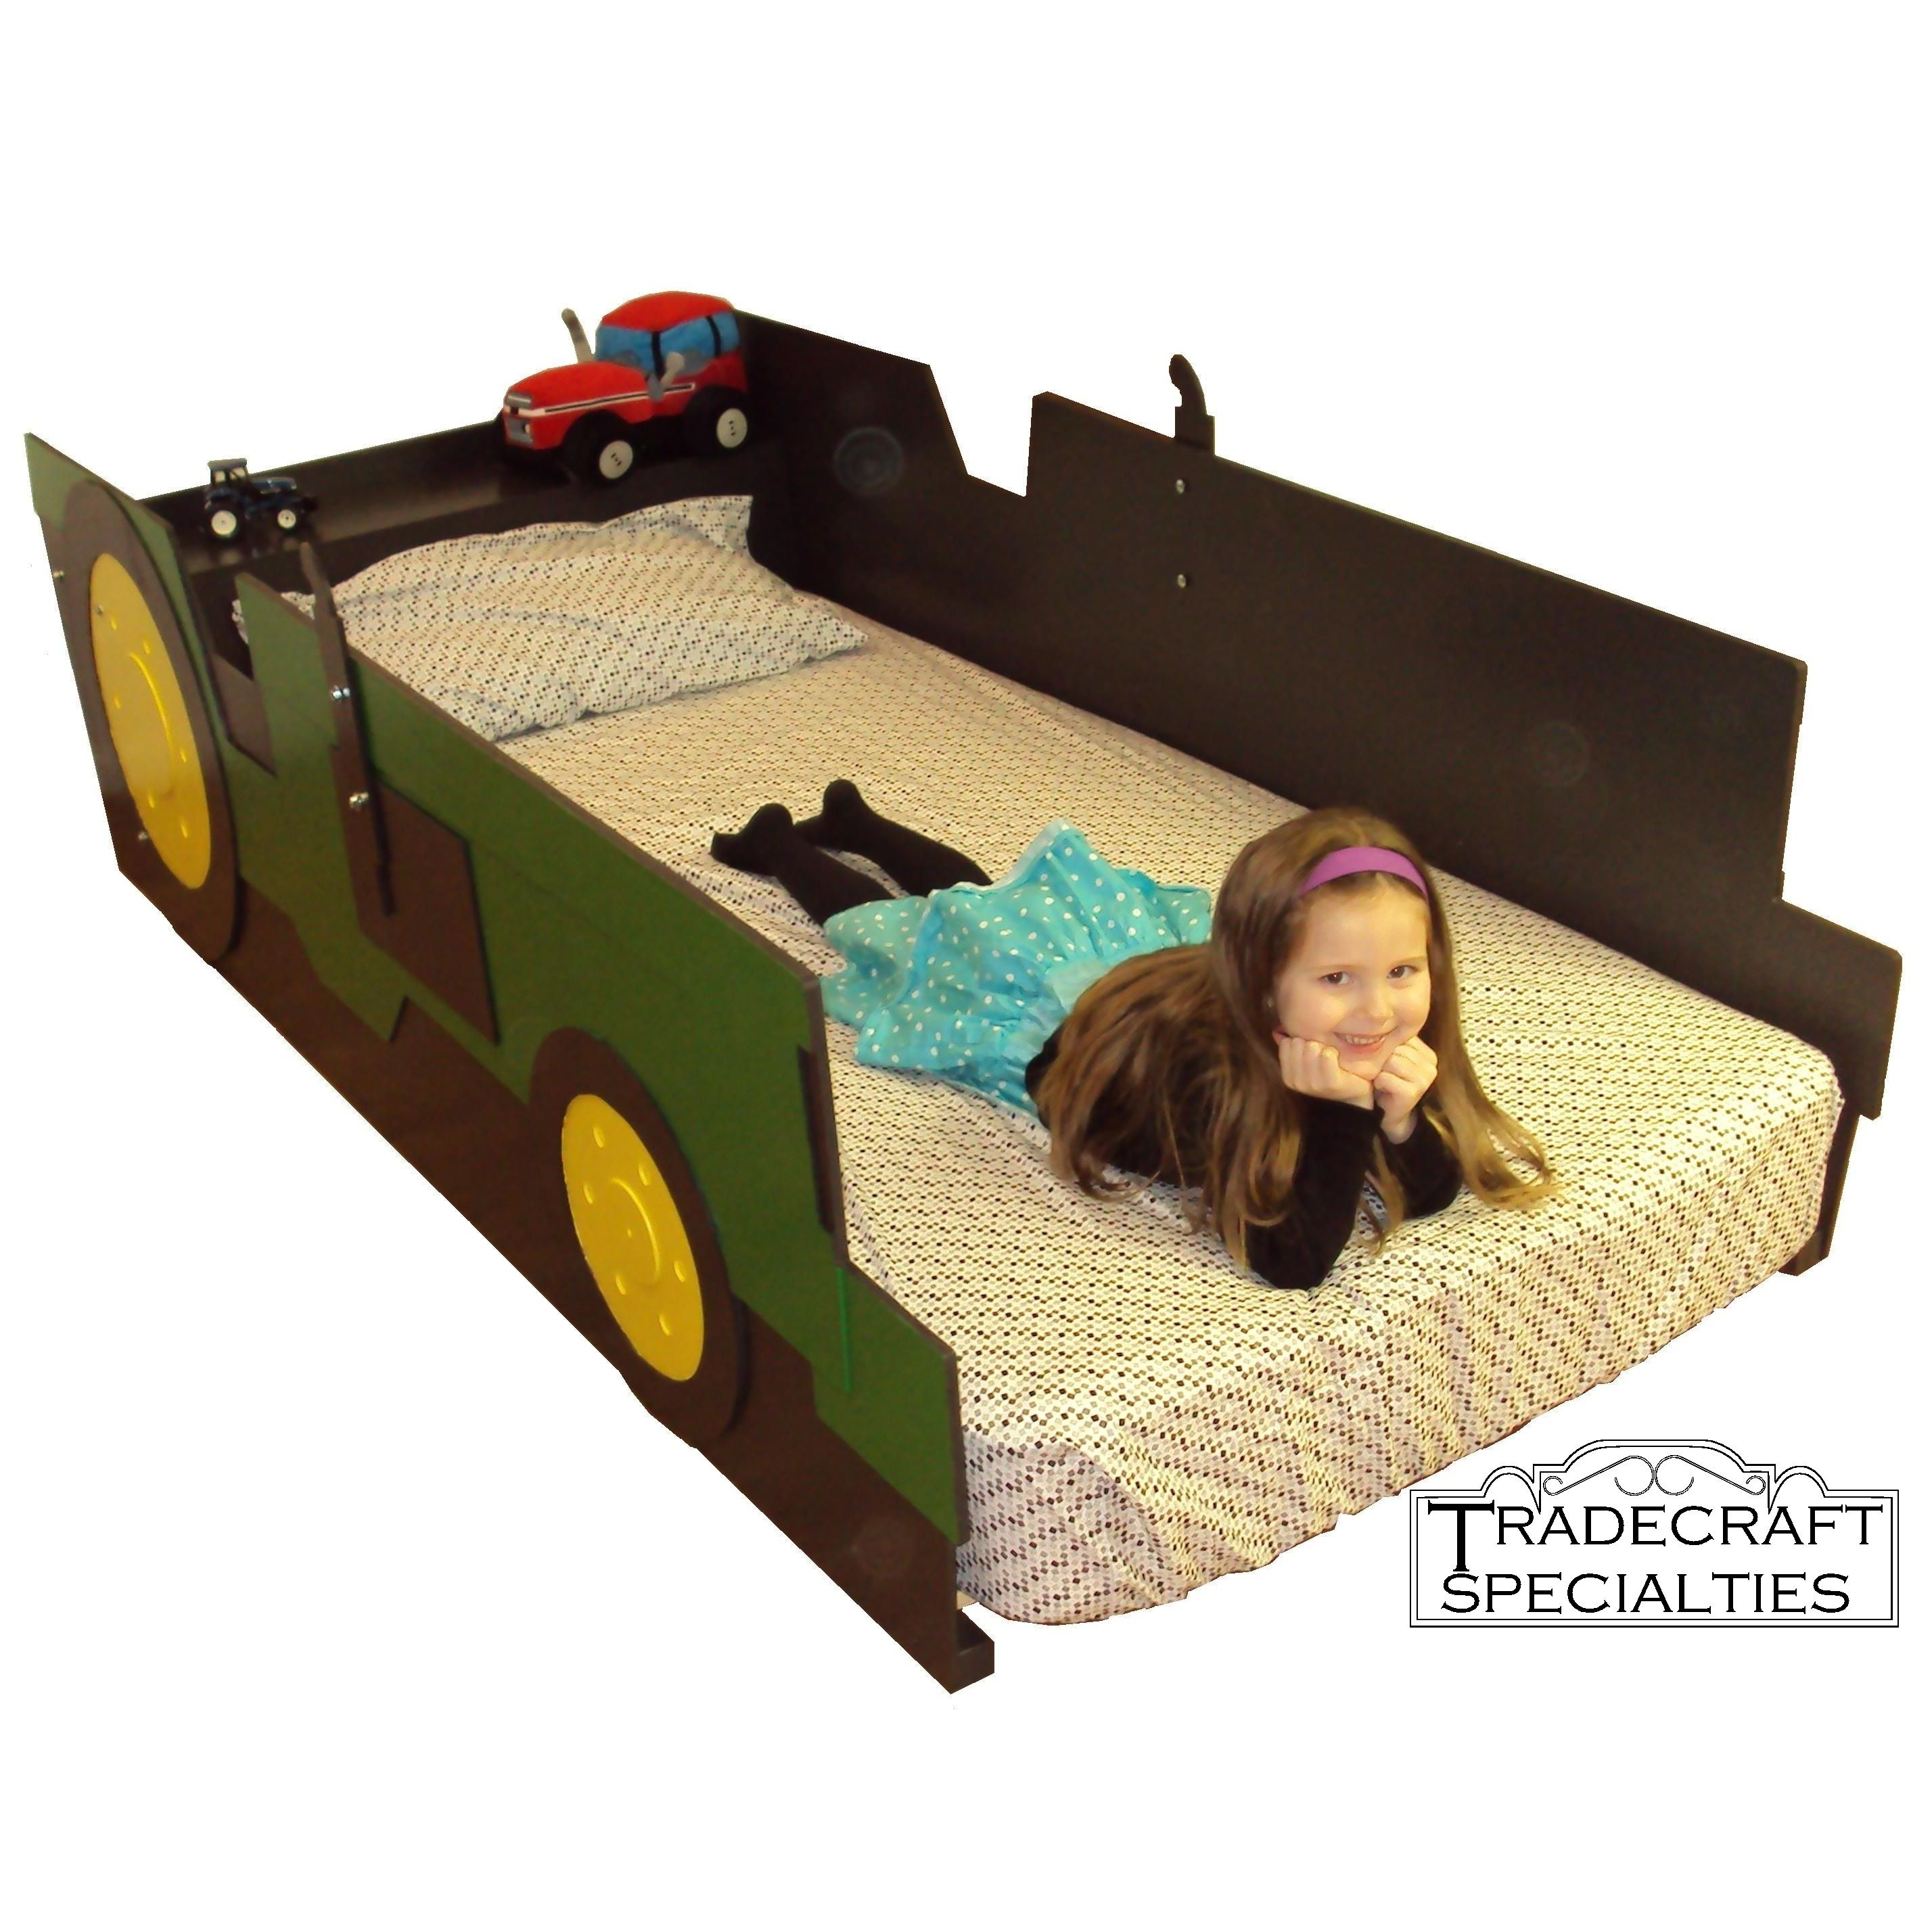 Buy a Handmade Tractor Twin Kids Bed Frame - Handcrafted - Farm ...